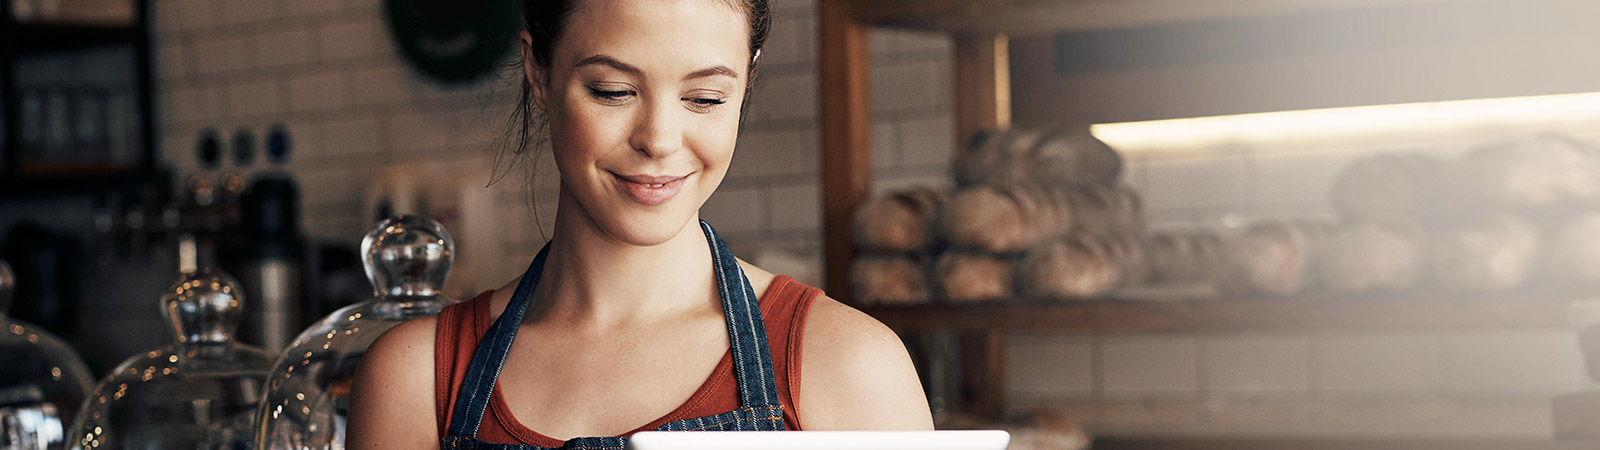 Woman in bakery looking down at iPad smiling